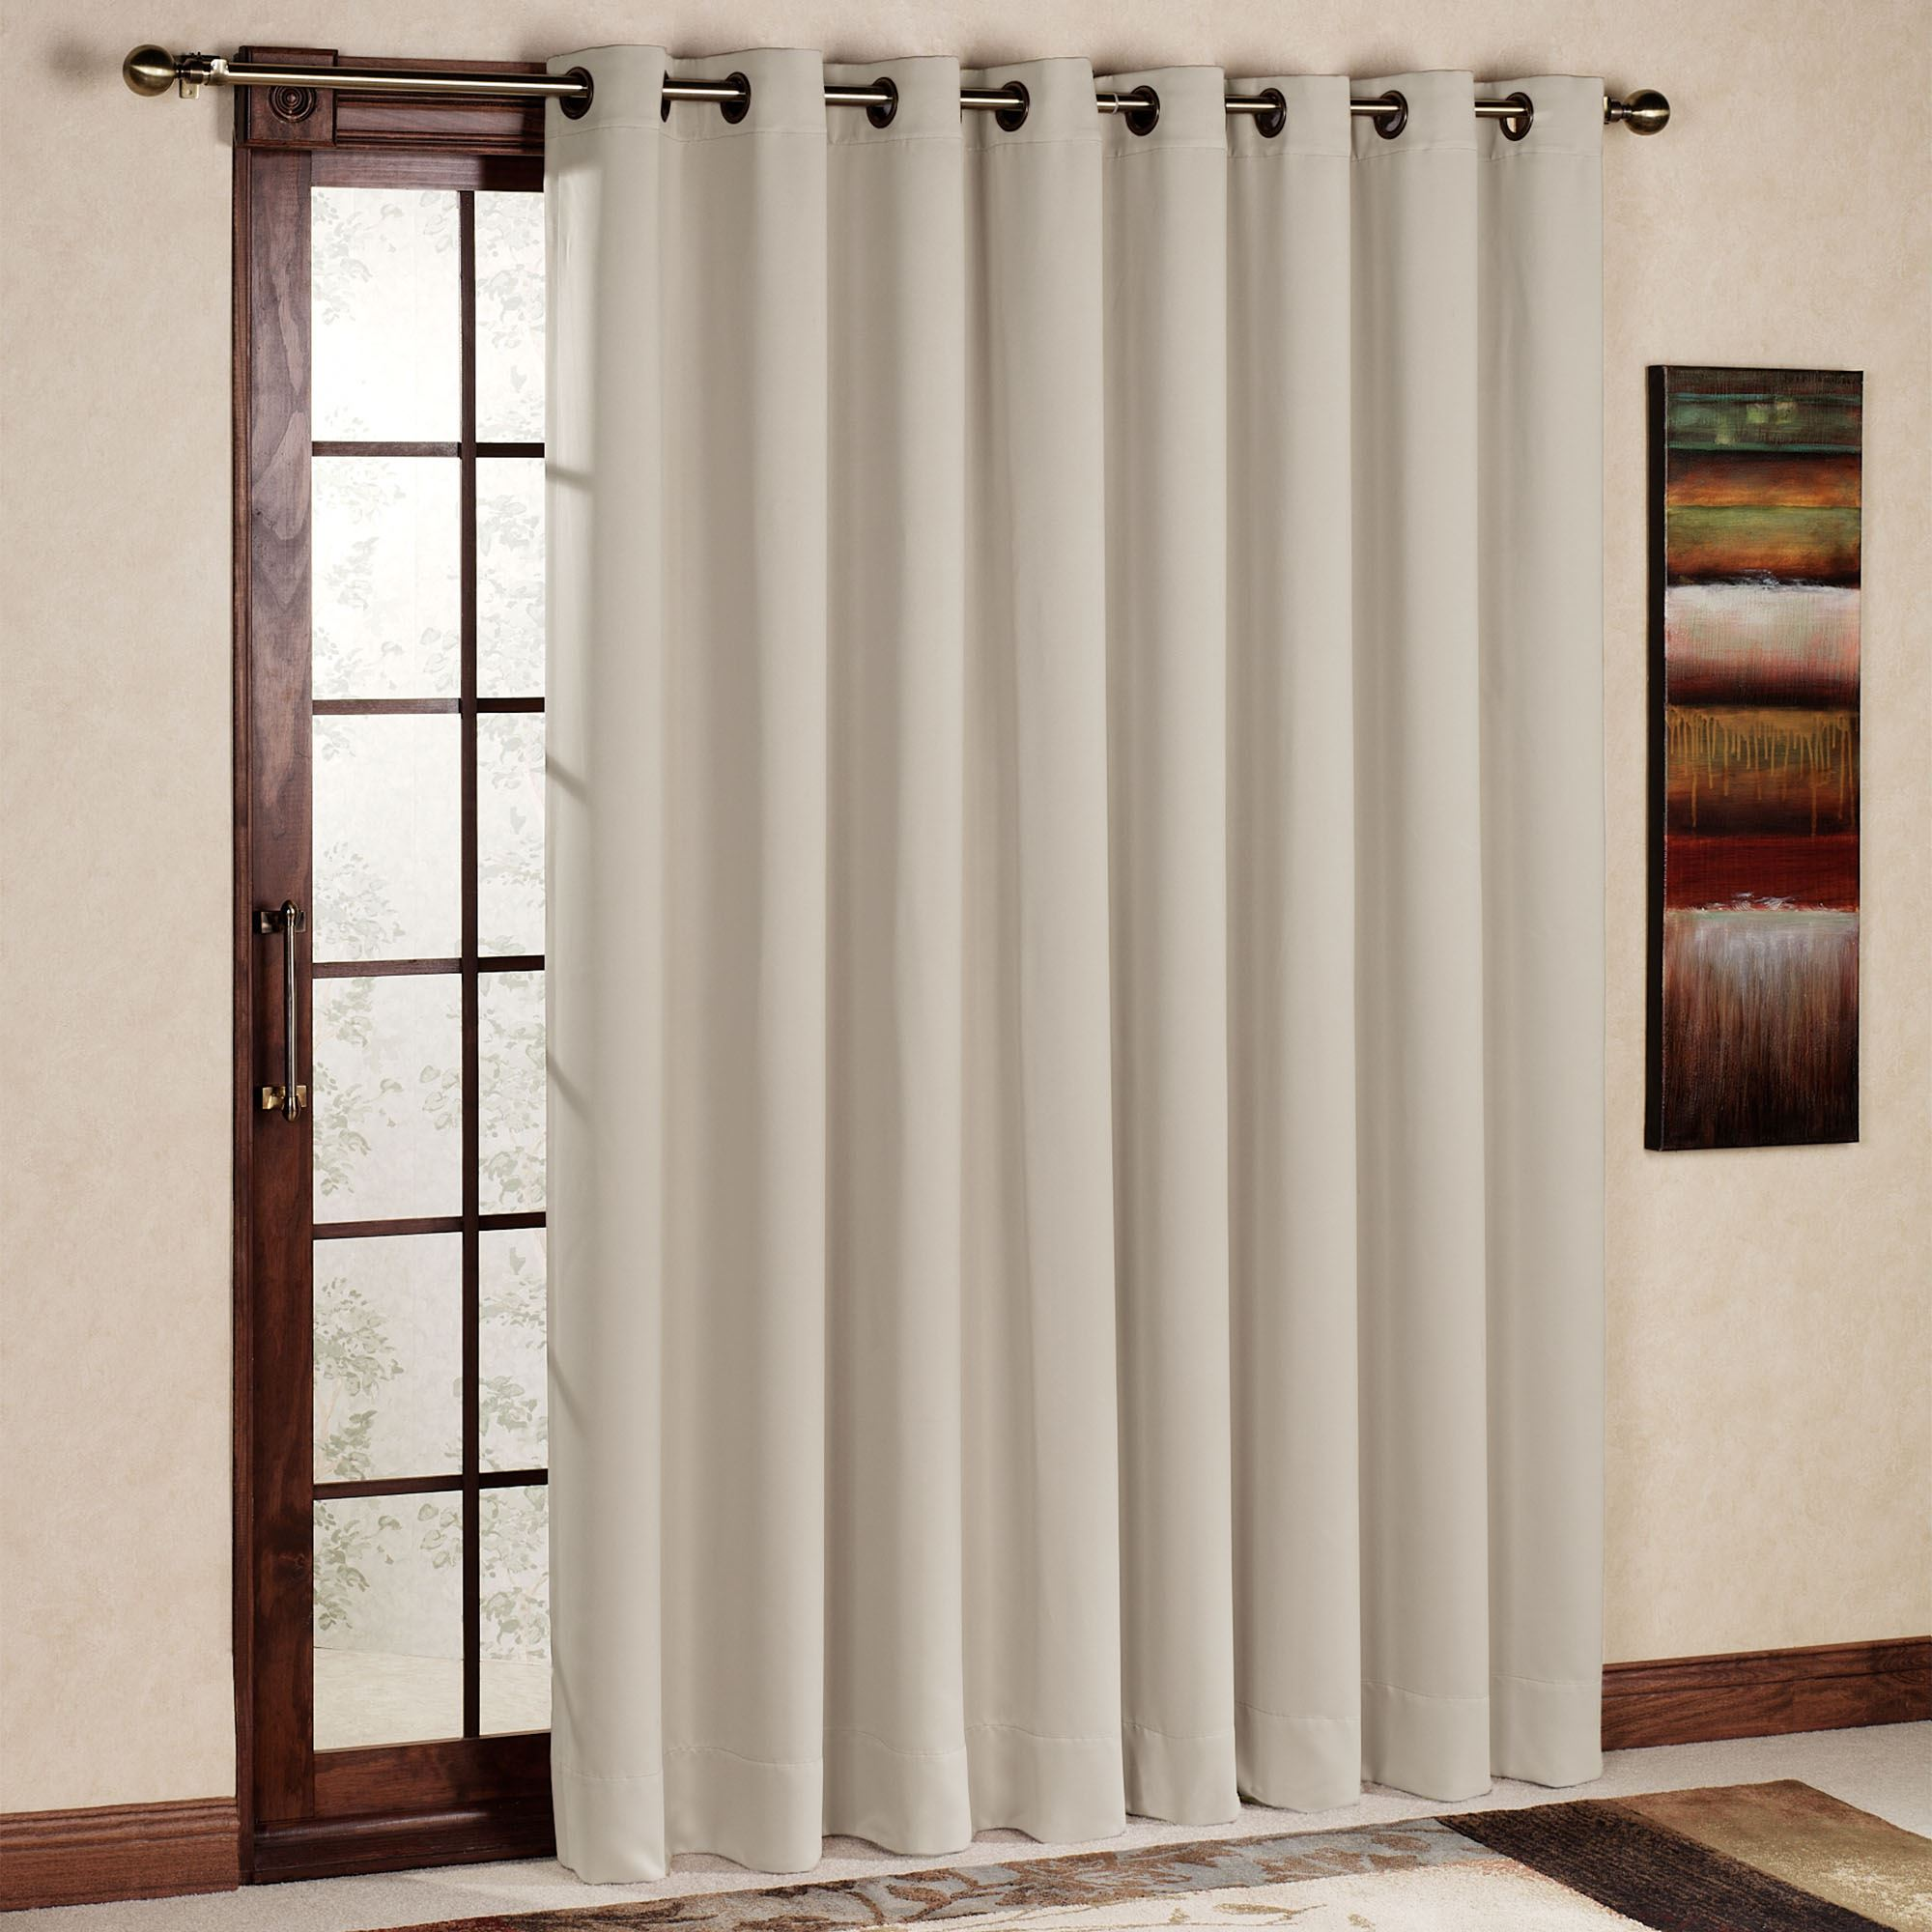 Thermal Patio Door Curtains With Grommets Ultimate Blackout Grommet Patio Panel